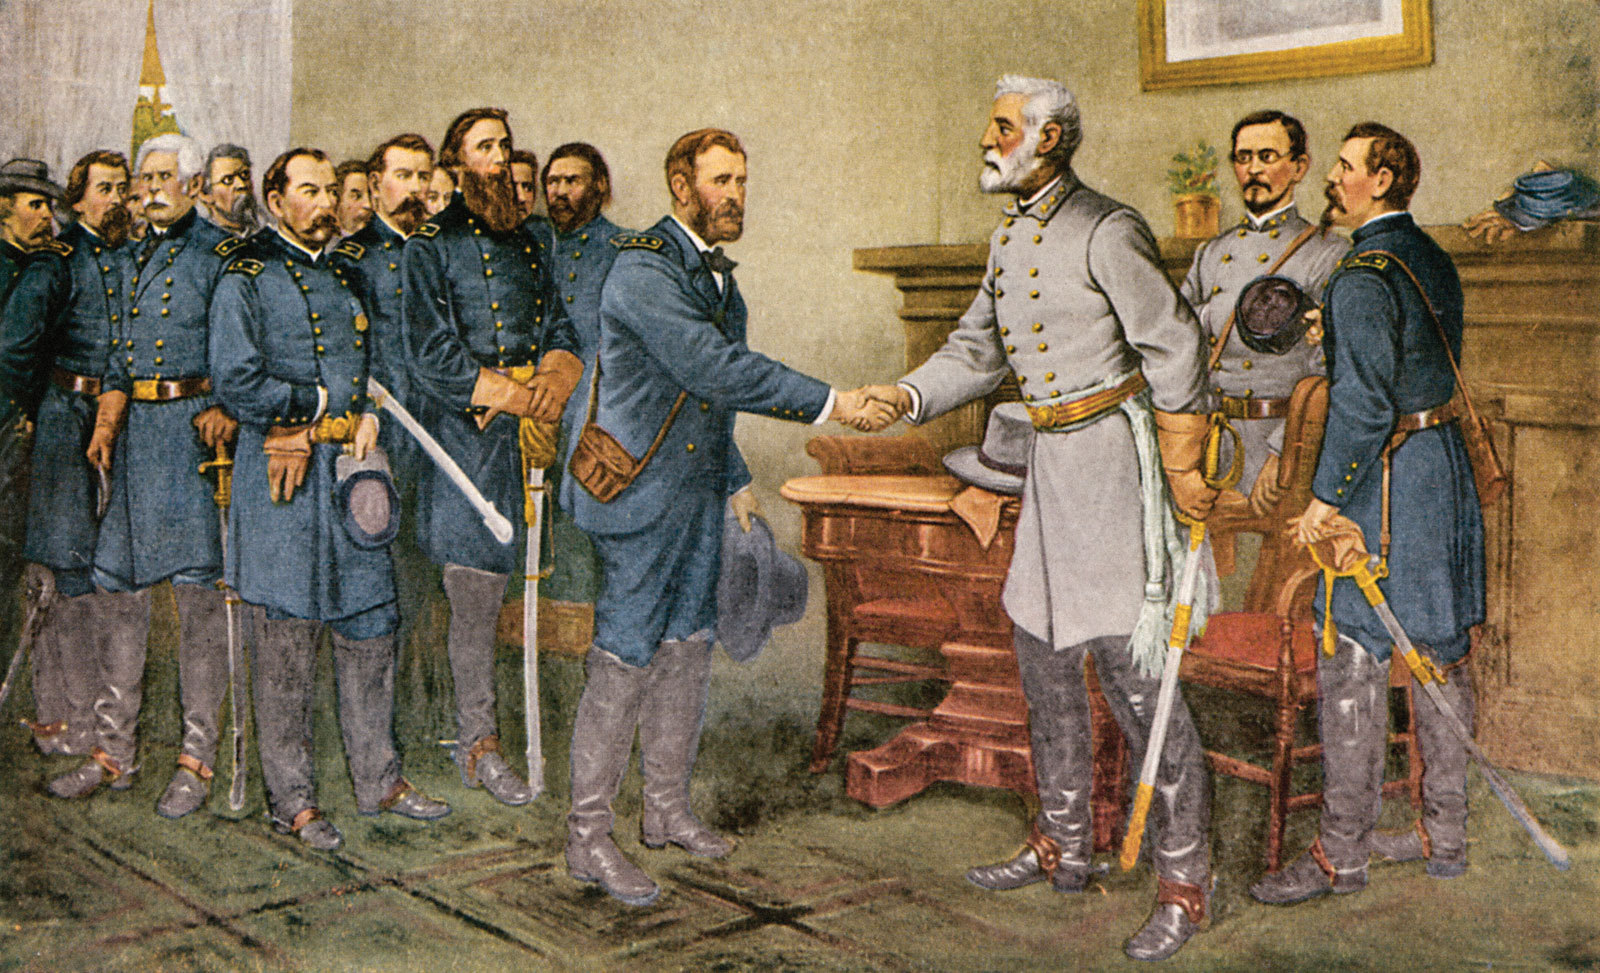 A print showing Union Army General-in-Chief Ulysses S. Grant accepting Confederate General-in-Chief Robert E. Lee's surrender on April 9th, 1865.